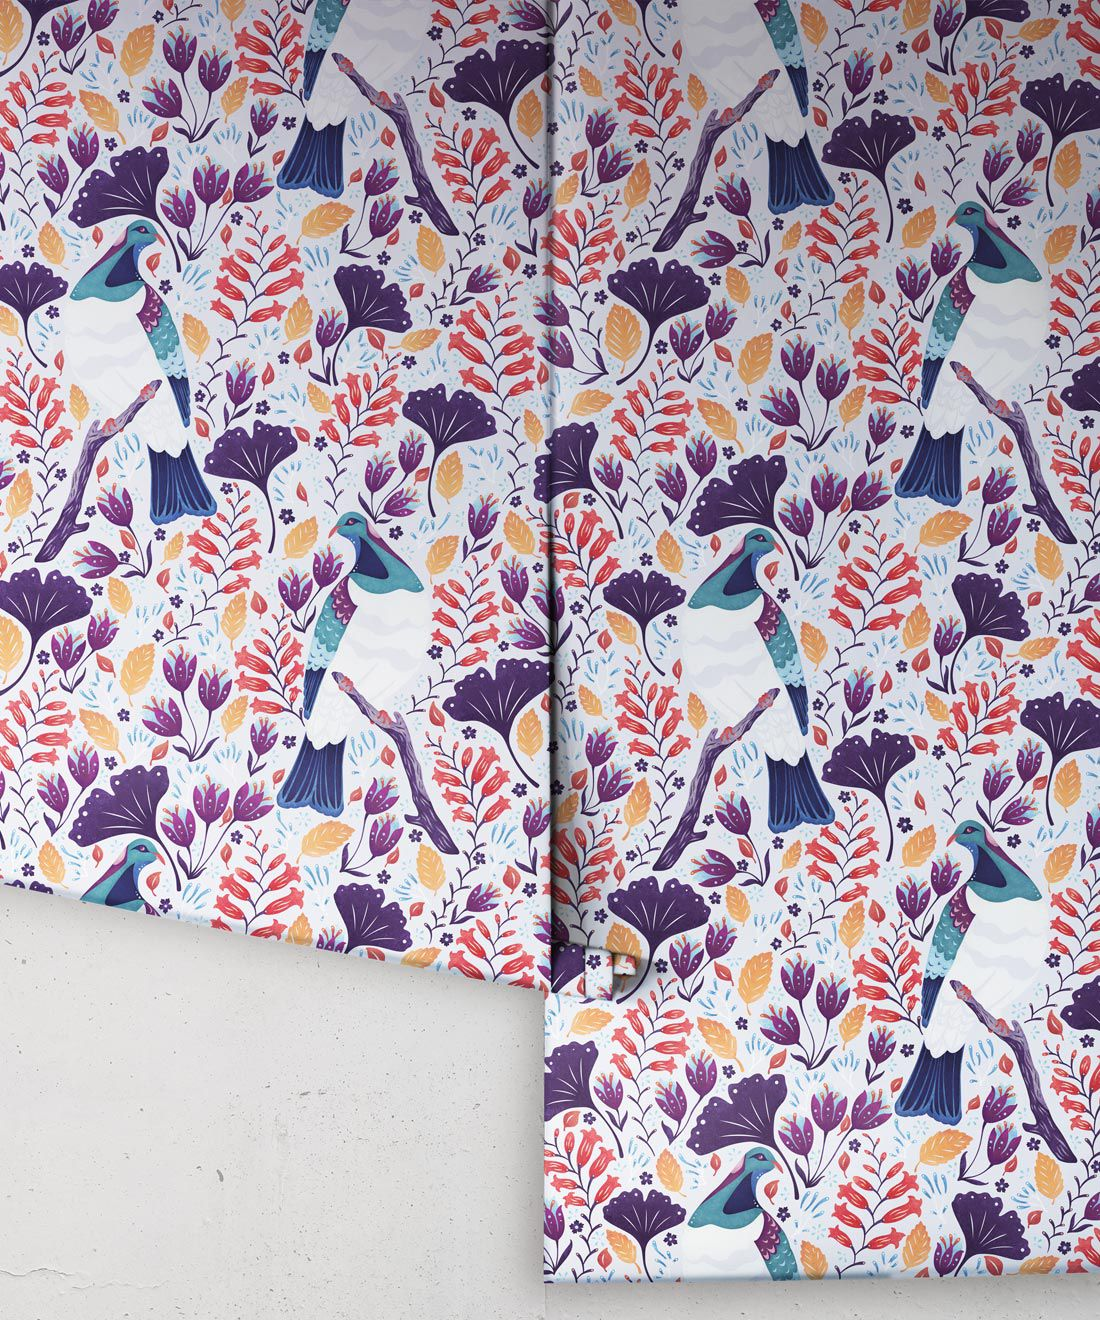 Kereru Wallpaper • Wood Pigeon• Bird Wallpaper •Assorted Color Wallpaper Rolls